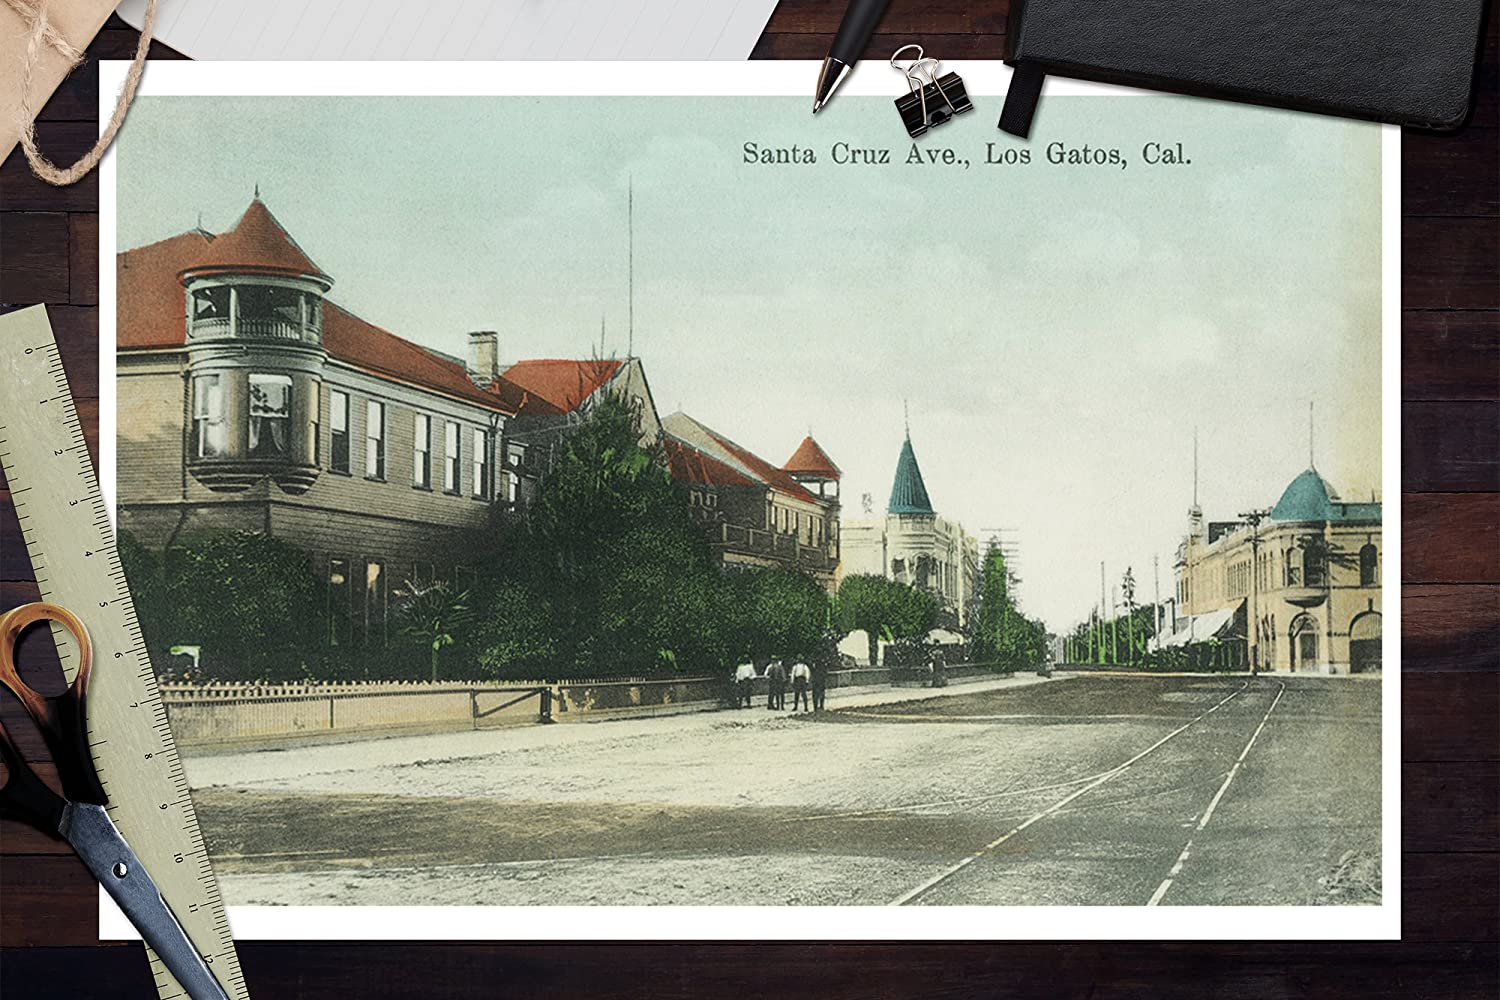 Amazon.com: Los Gatos, California - View of Santa Cruz Avenue (12x18 Art Print, Wall Decor Travel Poster): Posters & Prints